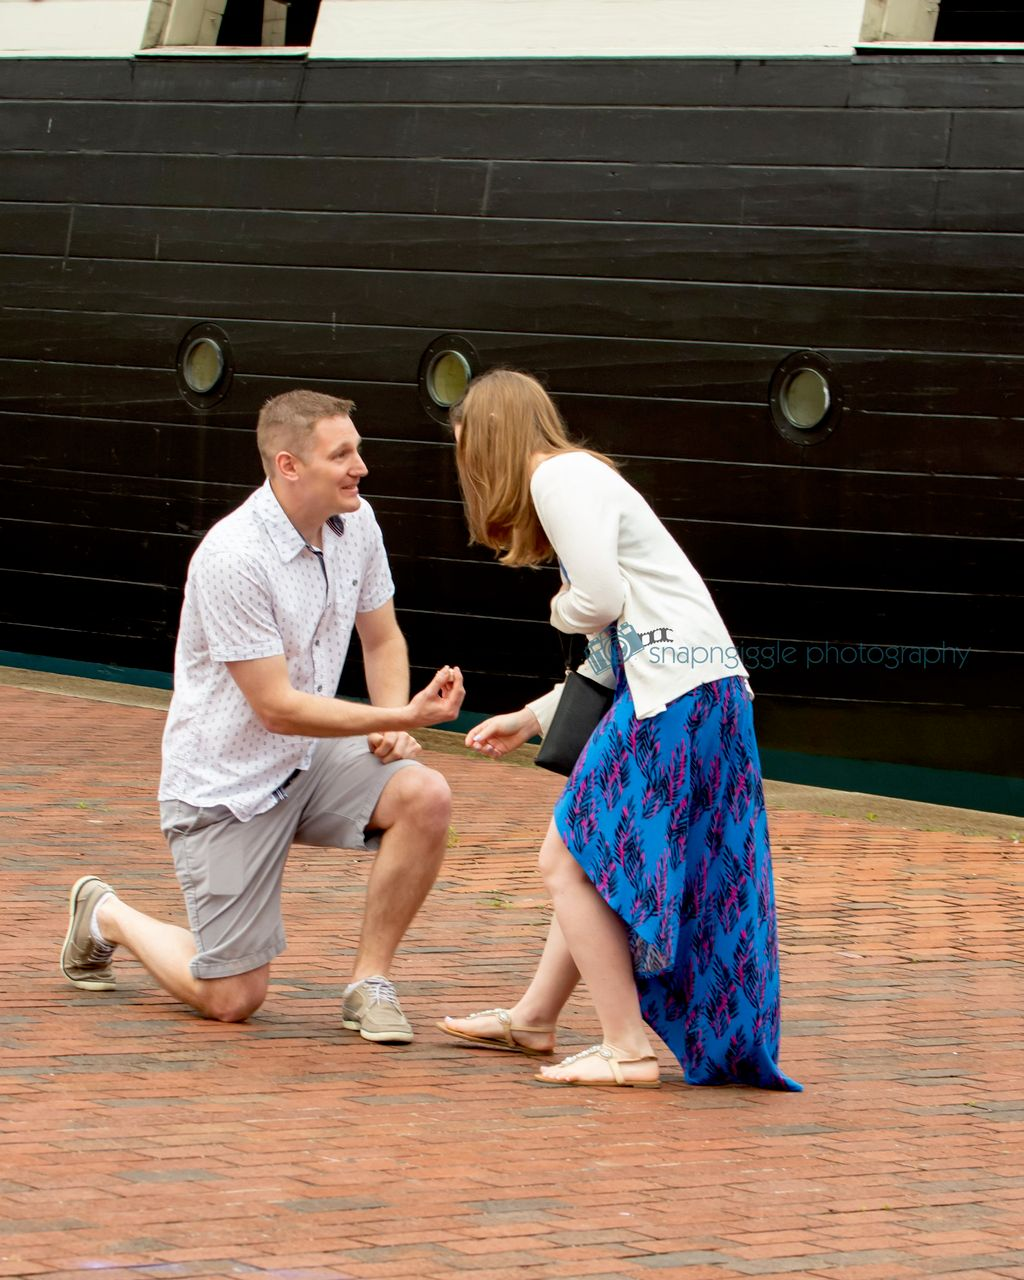 Engagement Photography - Baltimore 2019